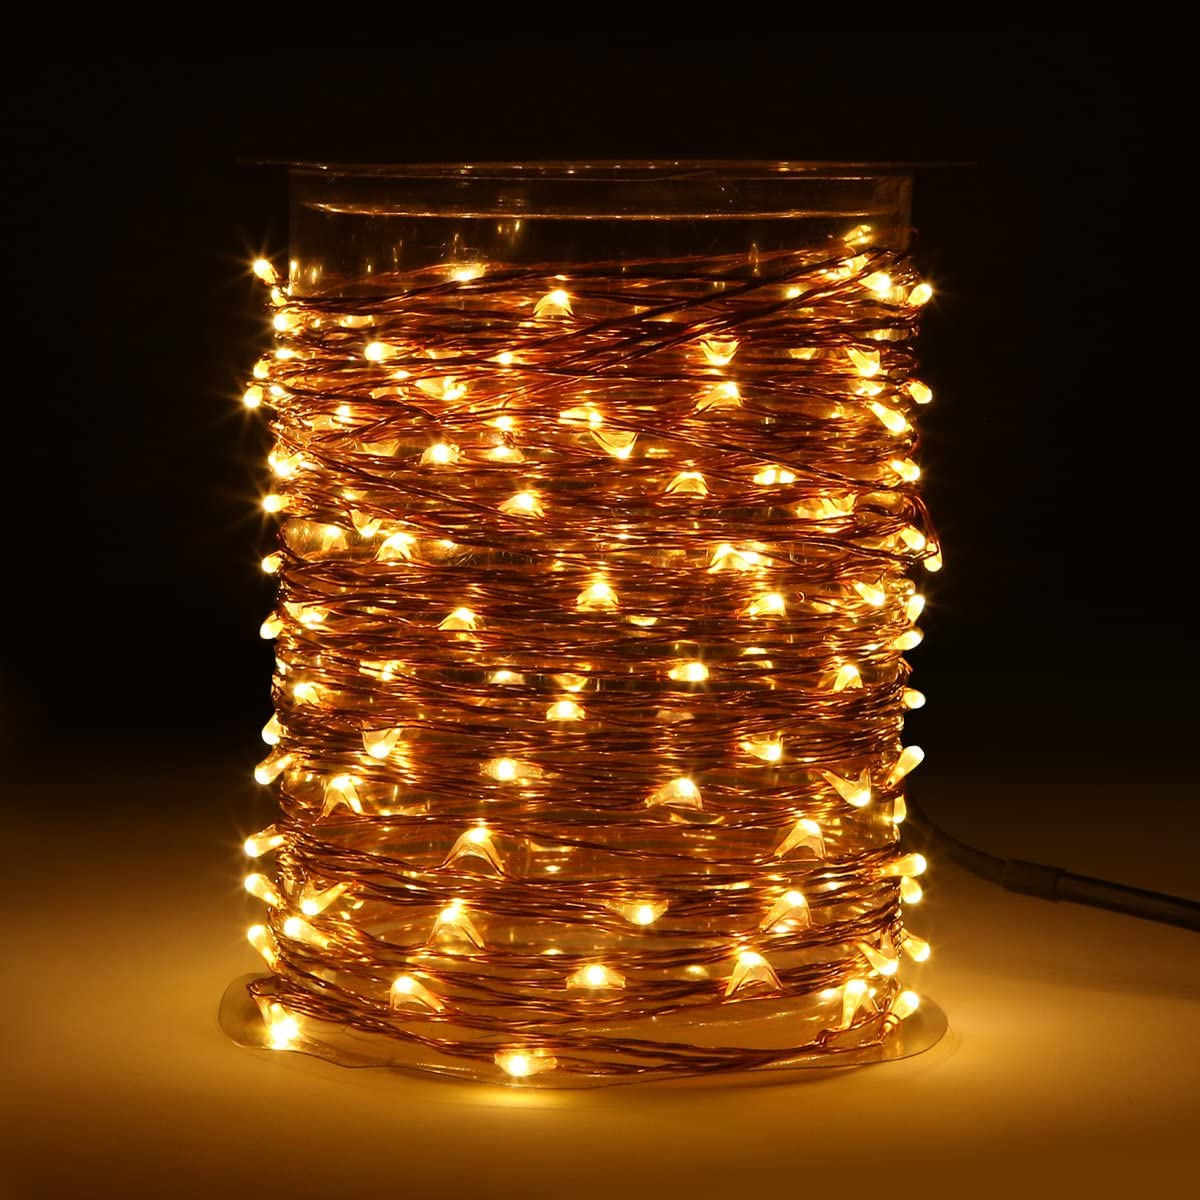 Topfashion 150 Leds 50ft Led Starry Firefly String Light Copper Wire Decorative Fairy Lights Warm White 15m Power Adapter Included Amazon Co Uk Kitchen Home